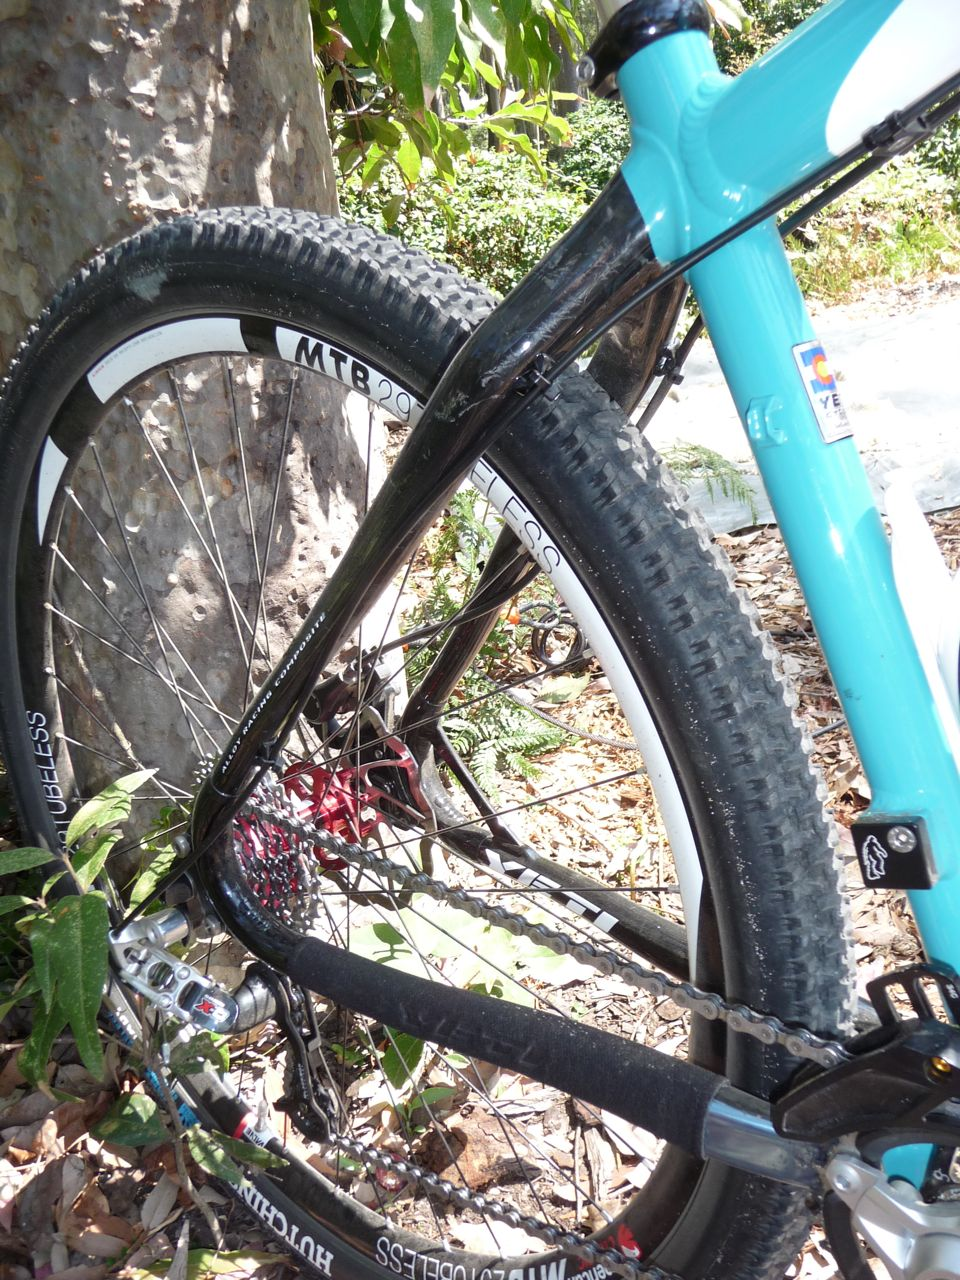 Can We Start a New Post Pictures of your 29er Thread?-ytb-reart.jpg